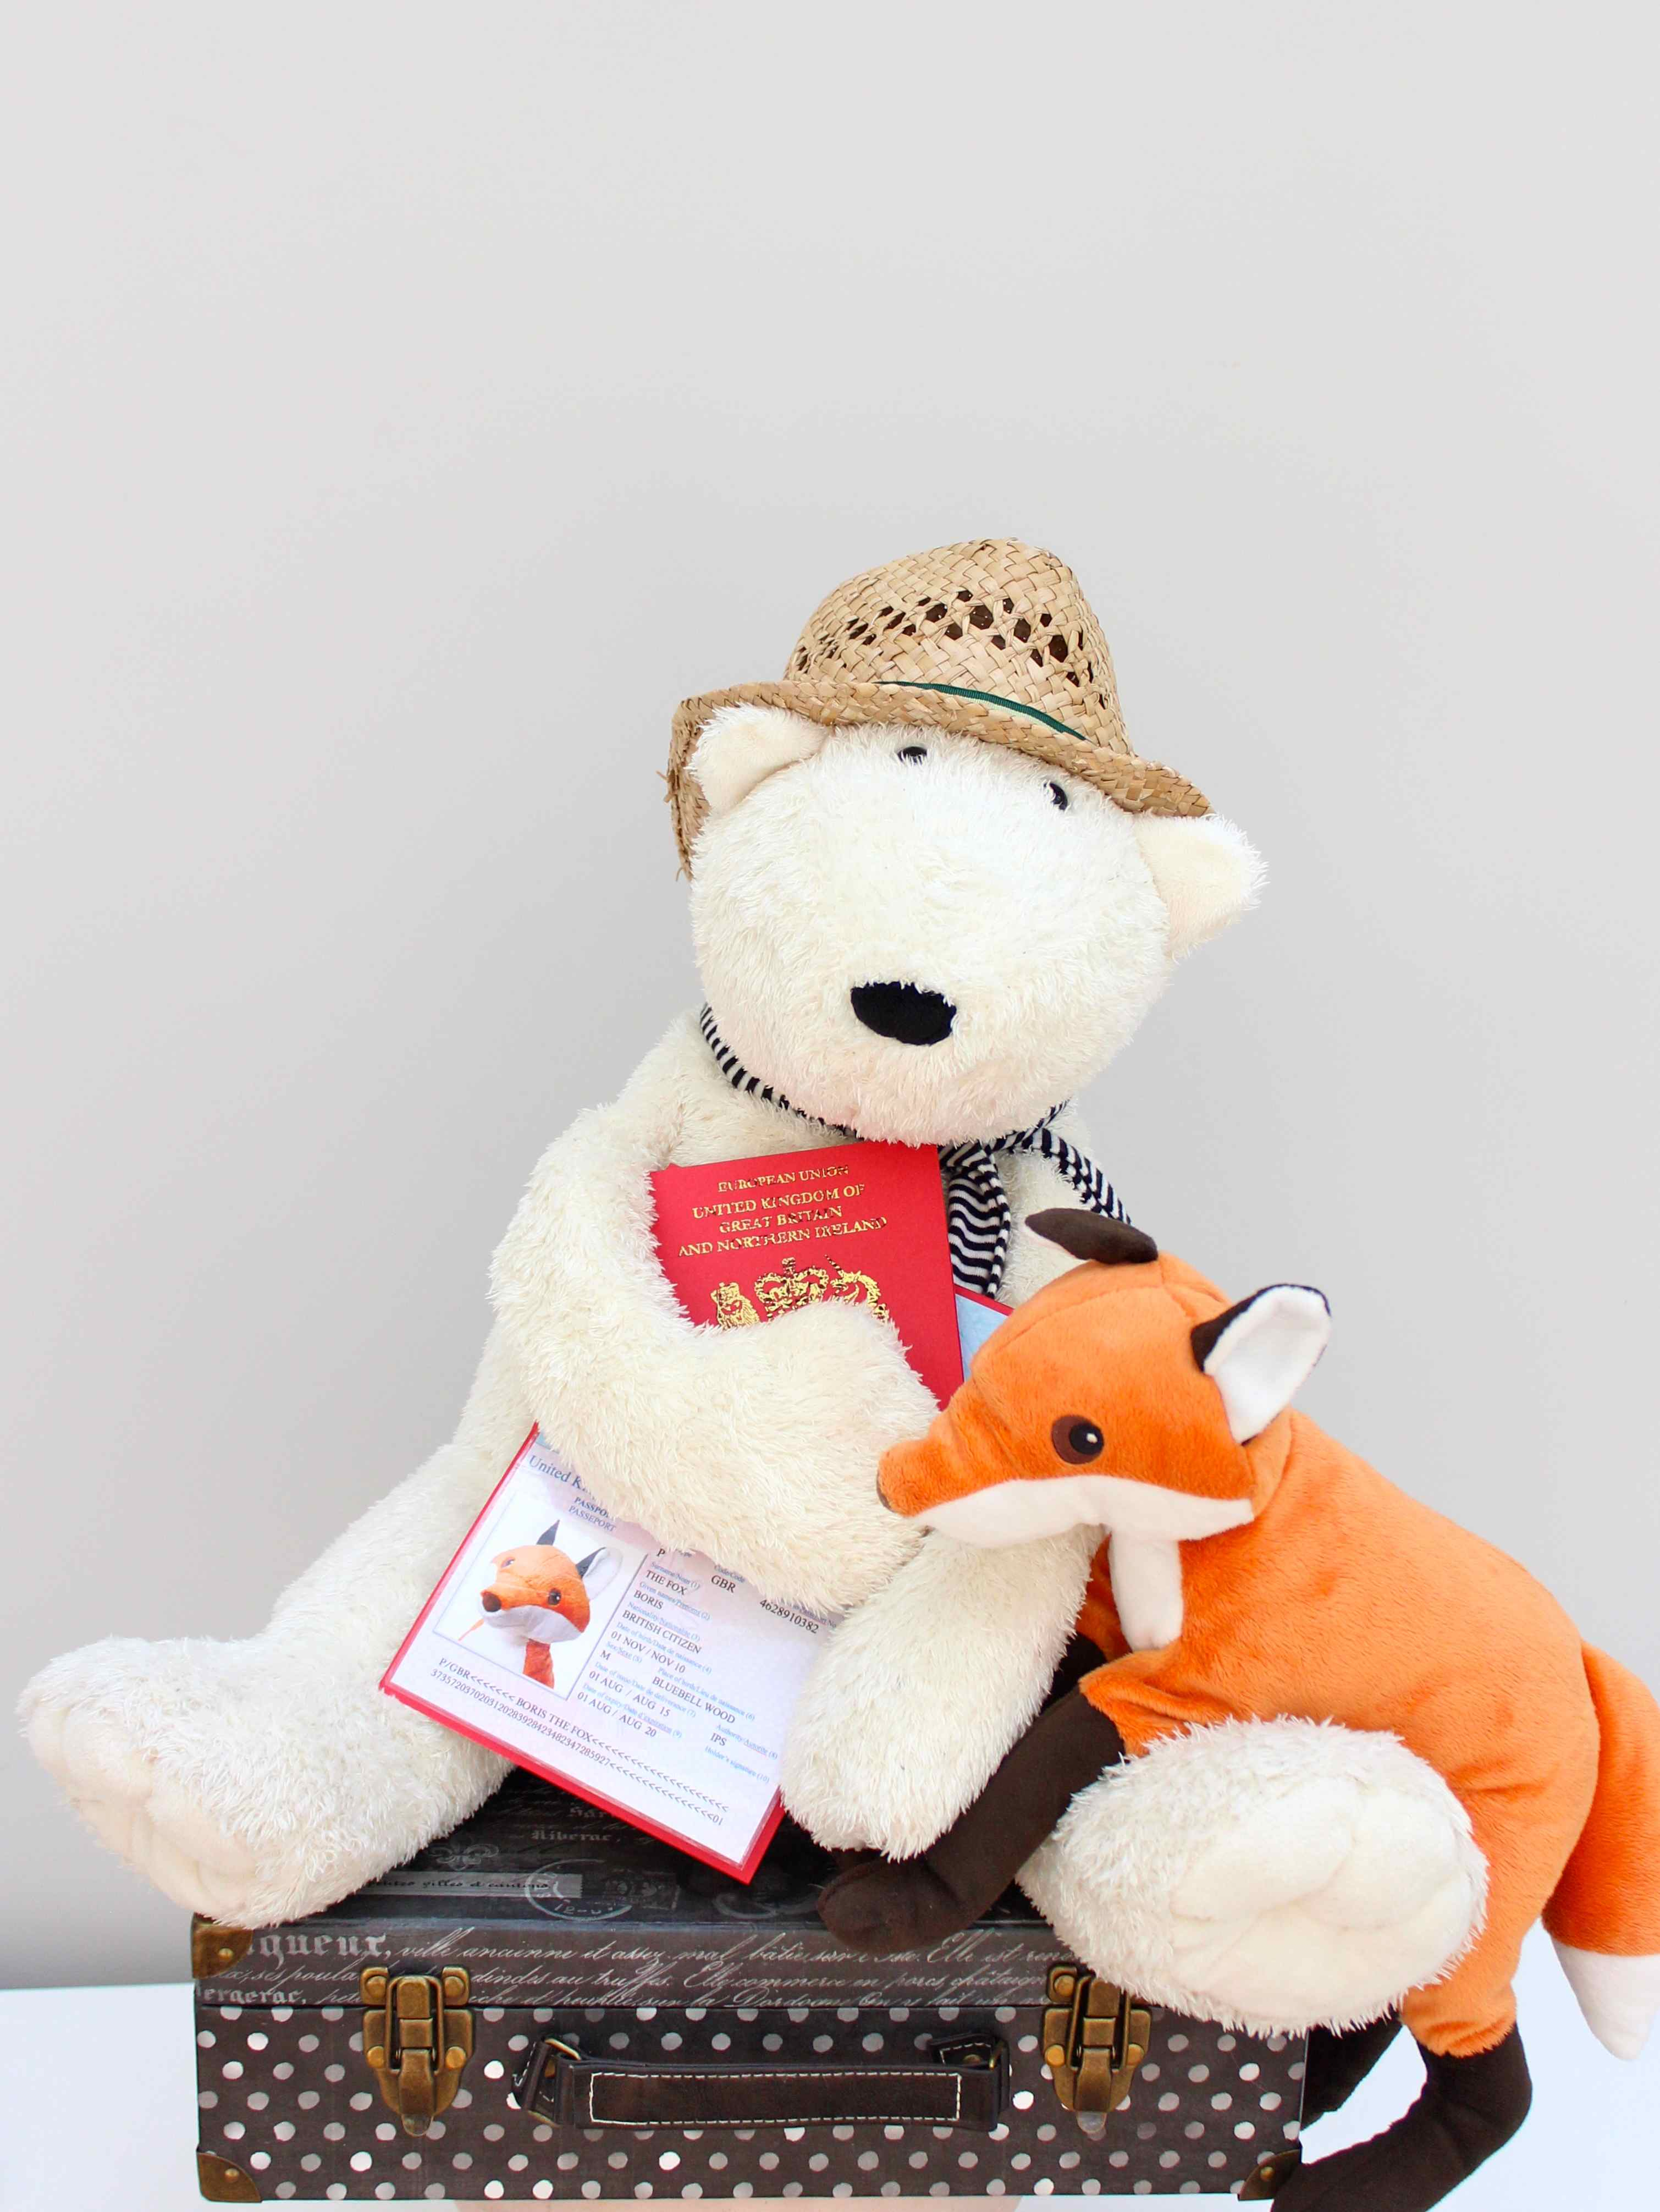 Teddy Laden passports or how to take the entire family on